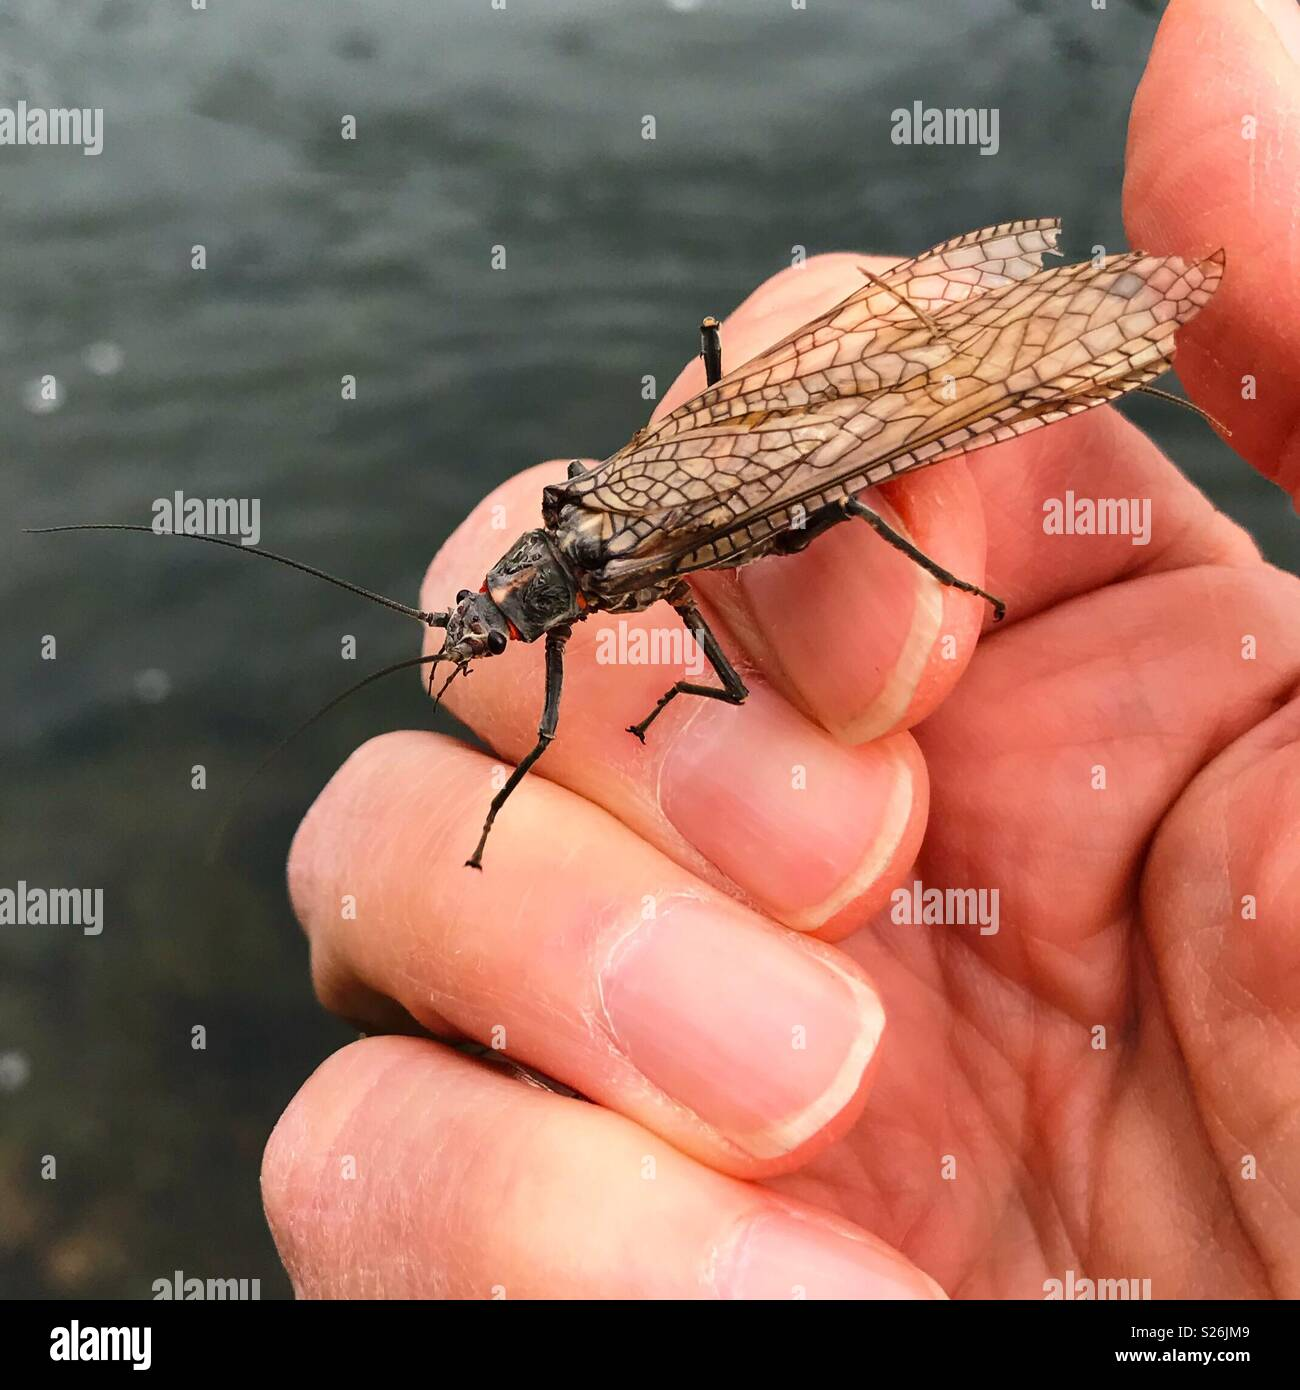 Large stonefly on a man's hand - Stock Image